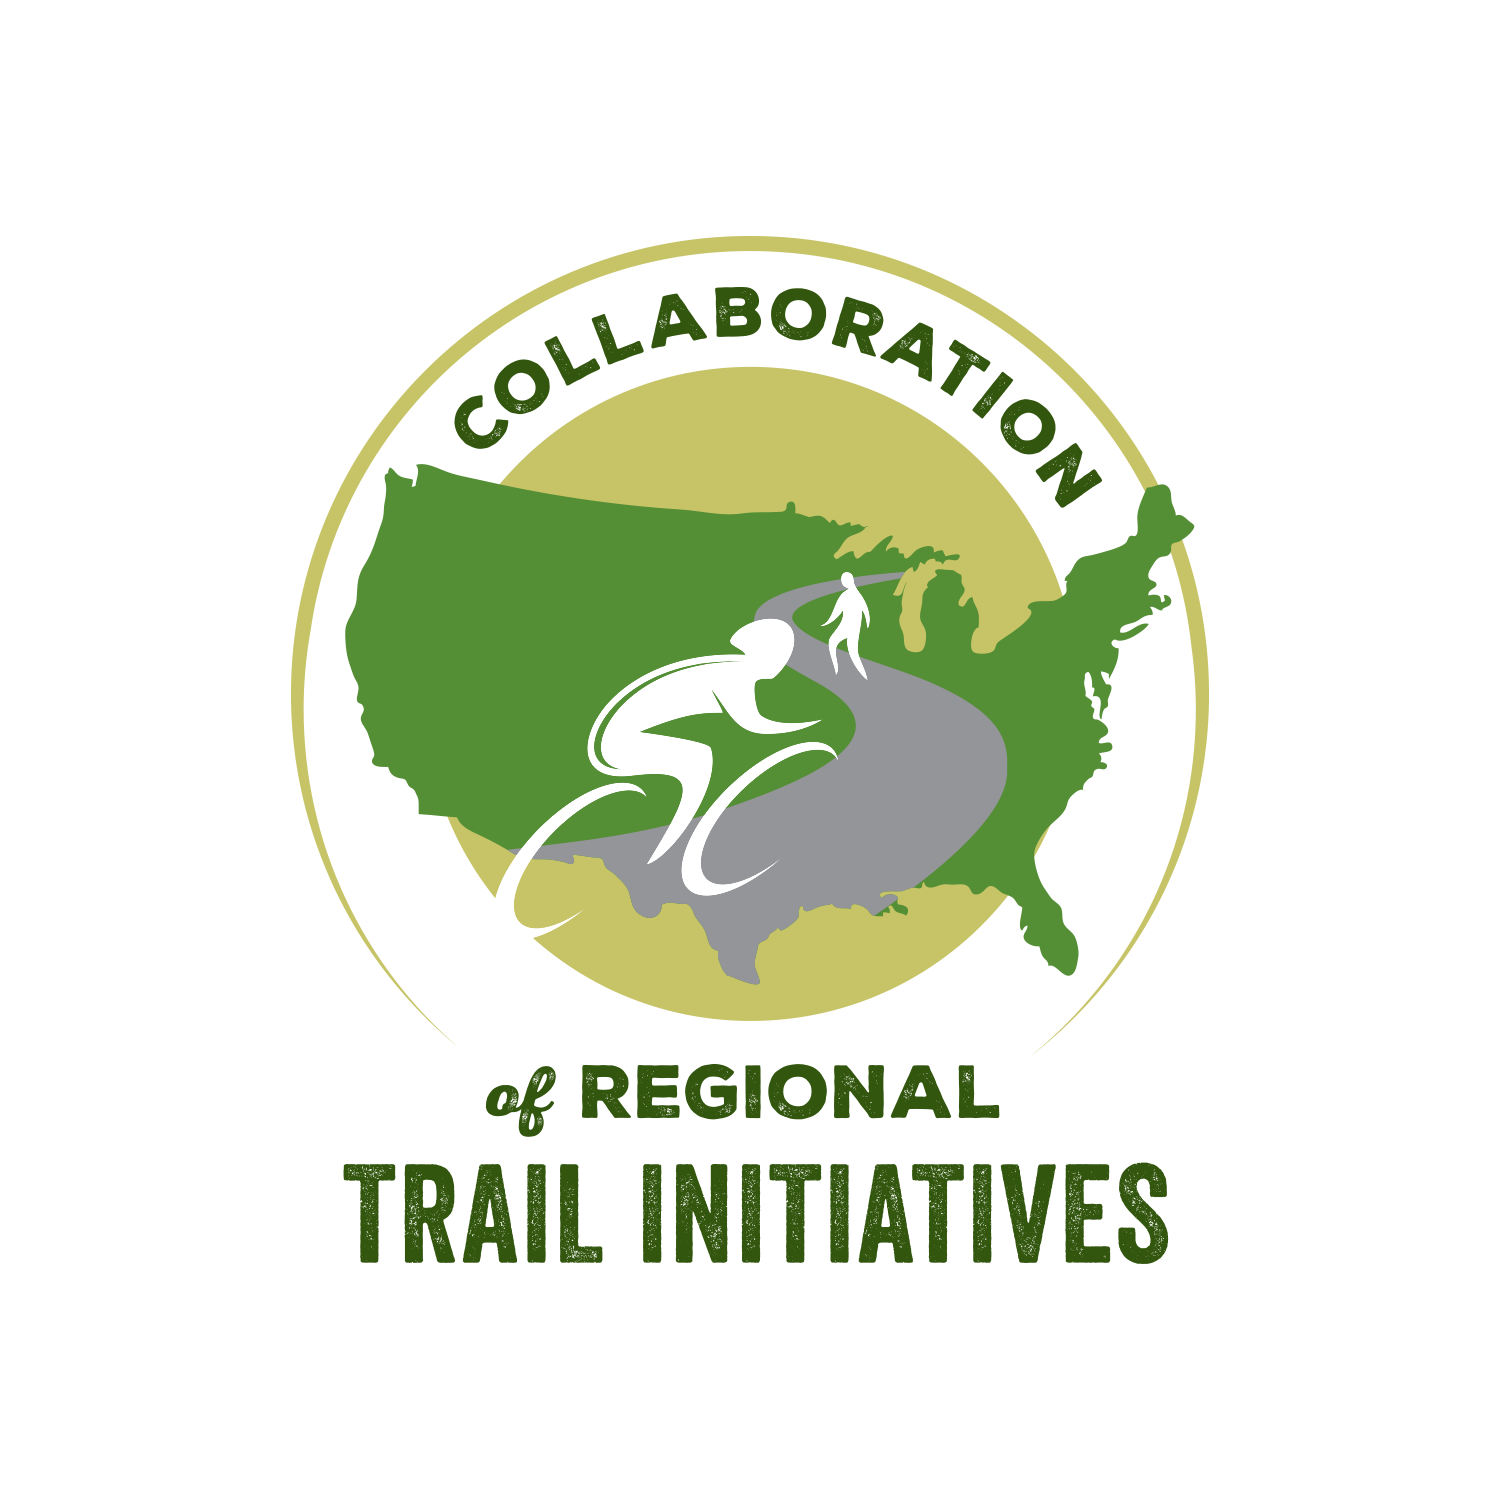 Collaboration of Regional Trail Initiatives